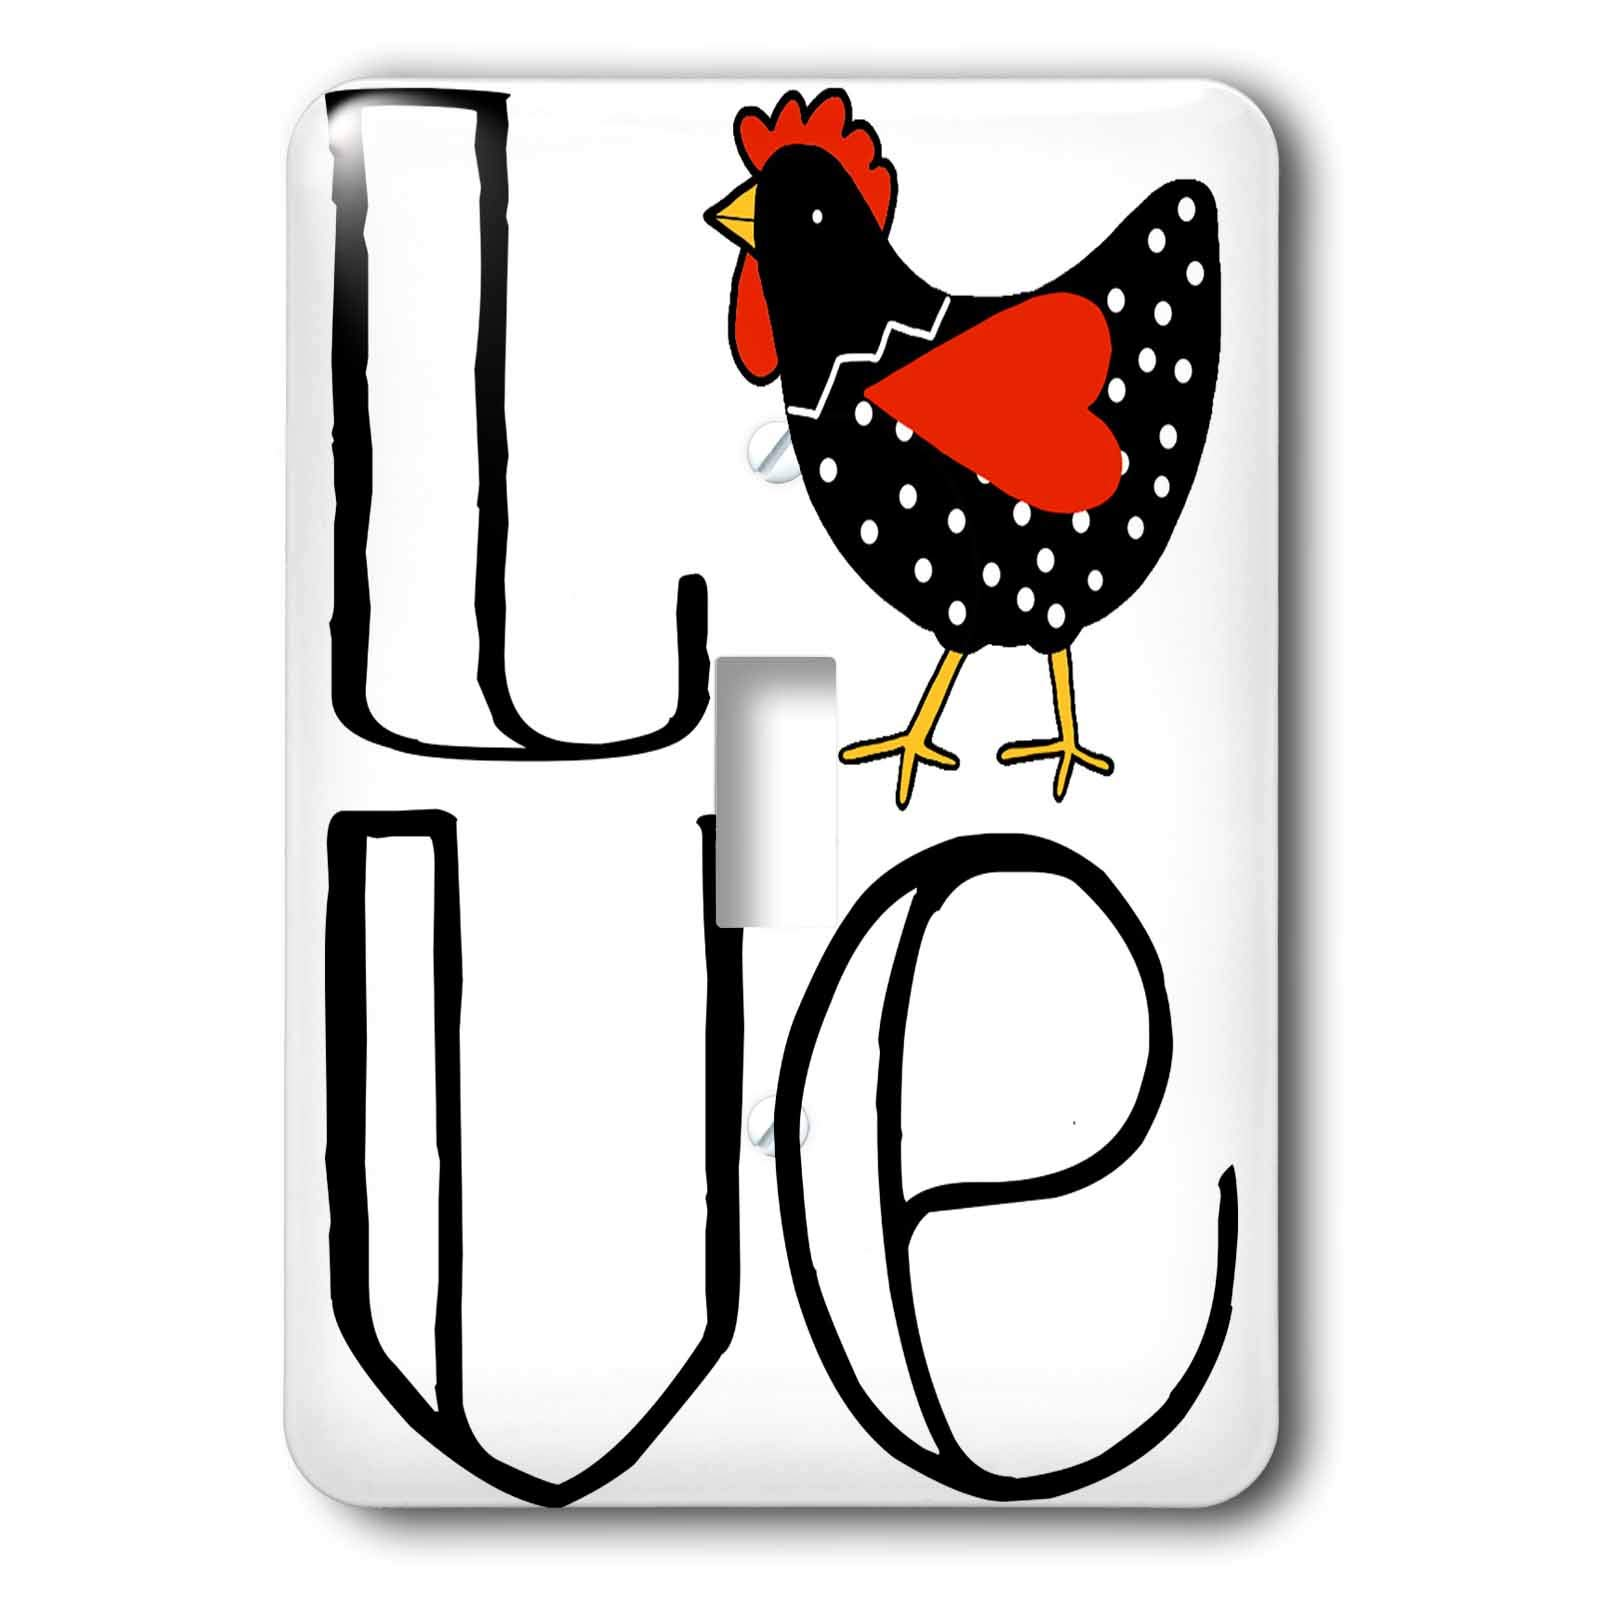 3dRose AllSouthernDesignTees - Birds - Fun cool word LOVE with a cute cartoon polka dot chicken as the O - Light Switch Covers - single toggle switch (lsp_290620_1)